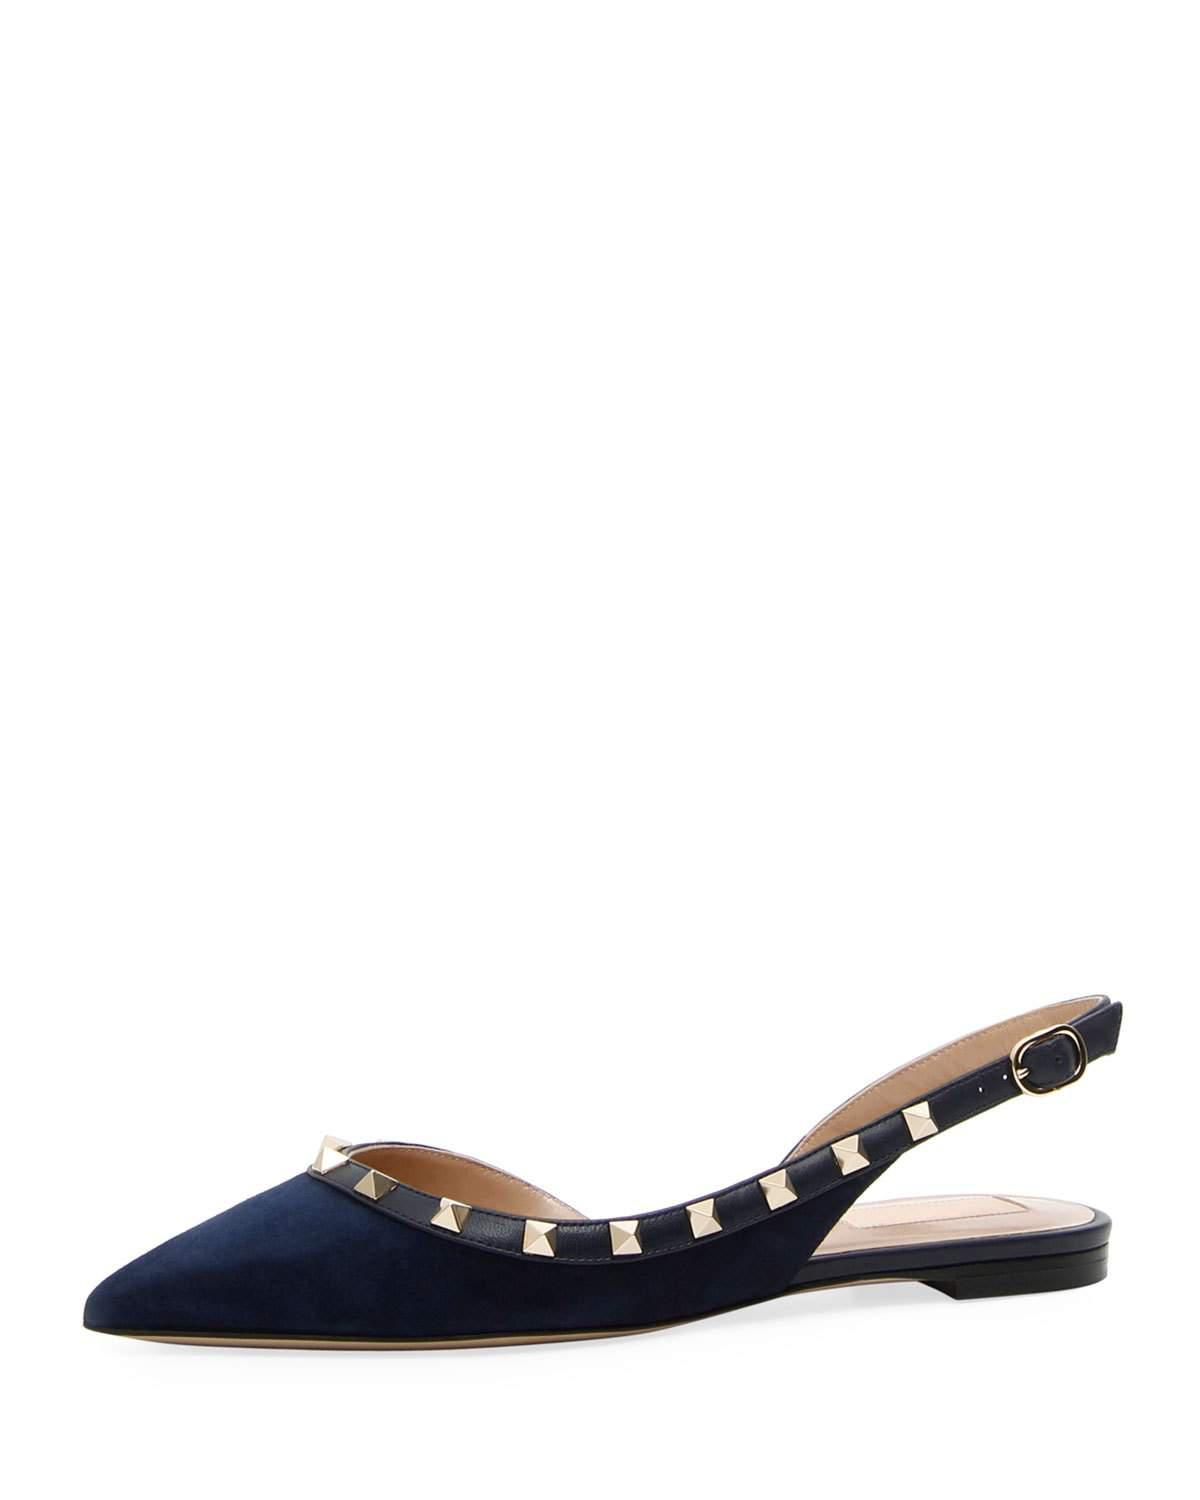 702015bb17be Valentino. Women s Suede Rockstud Slingback Ballet Flat